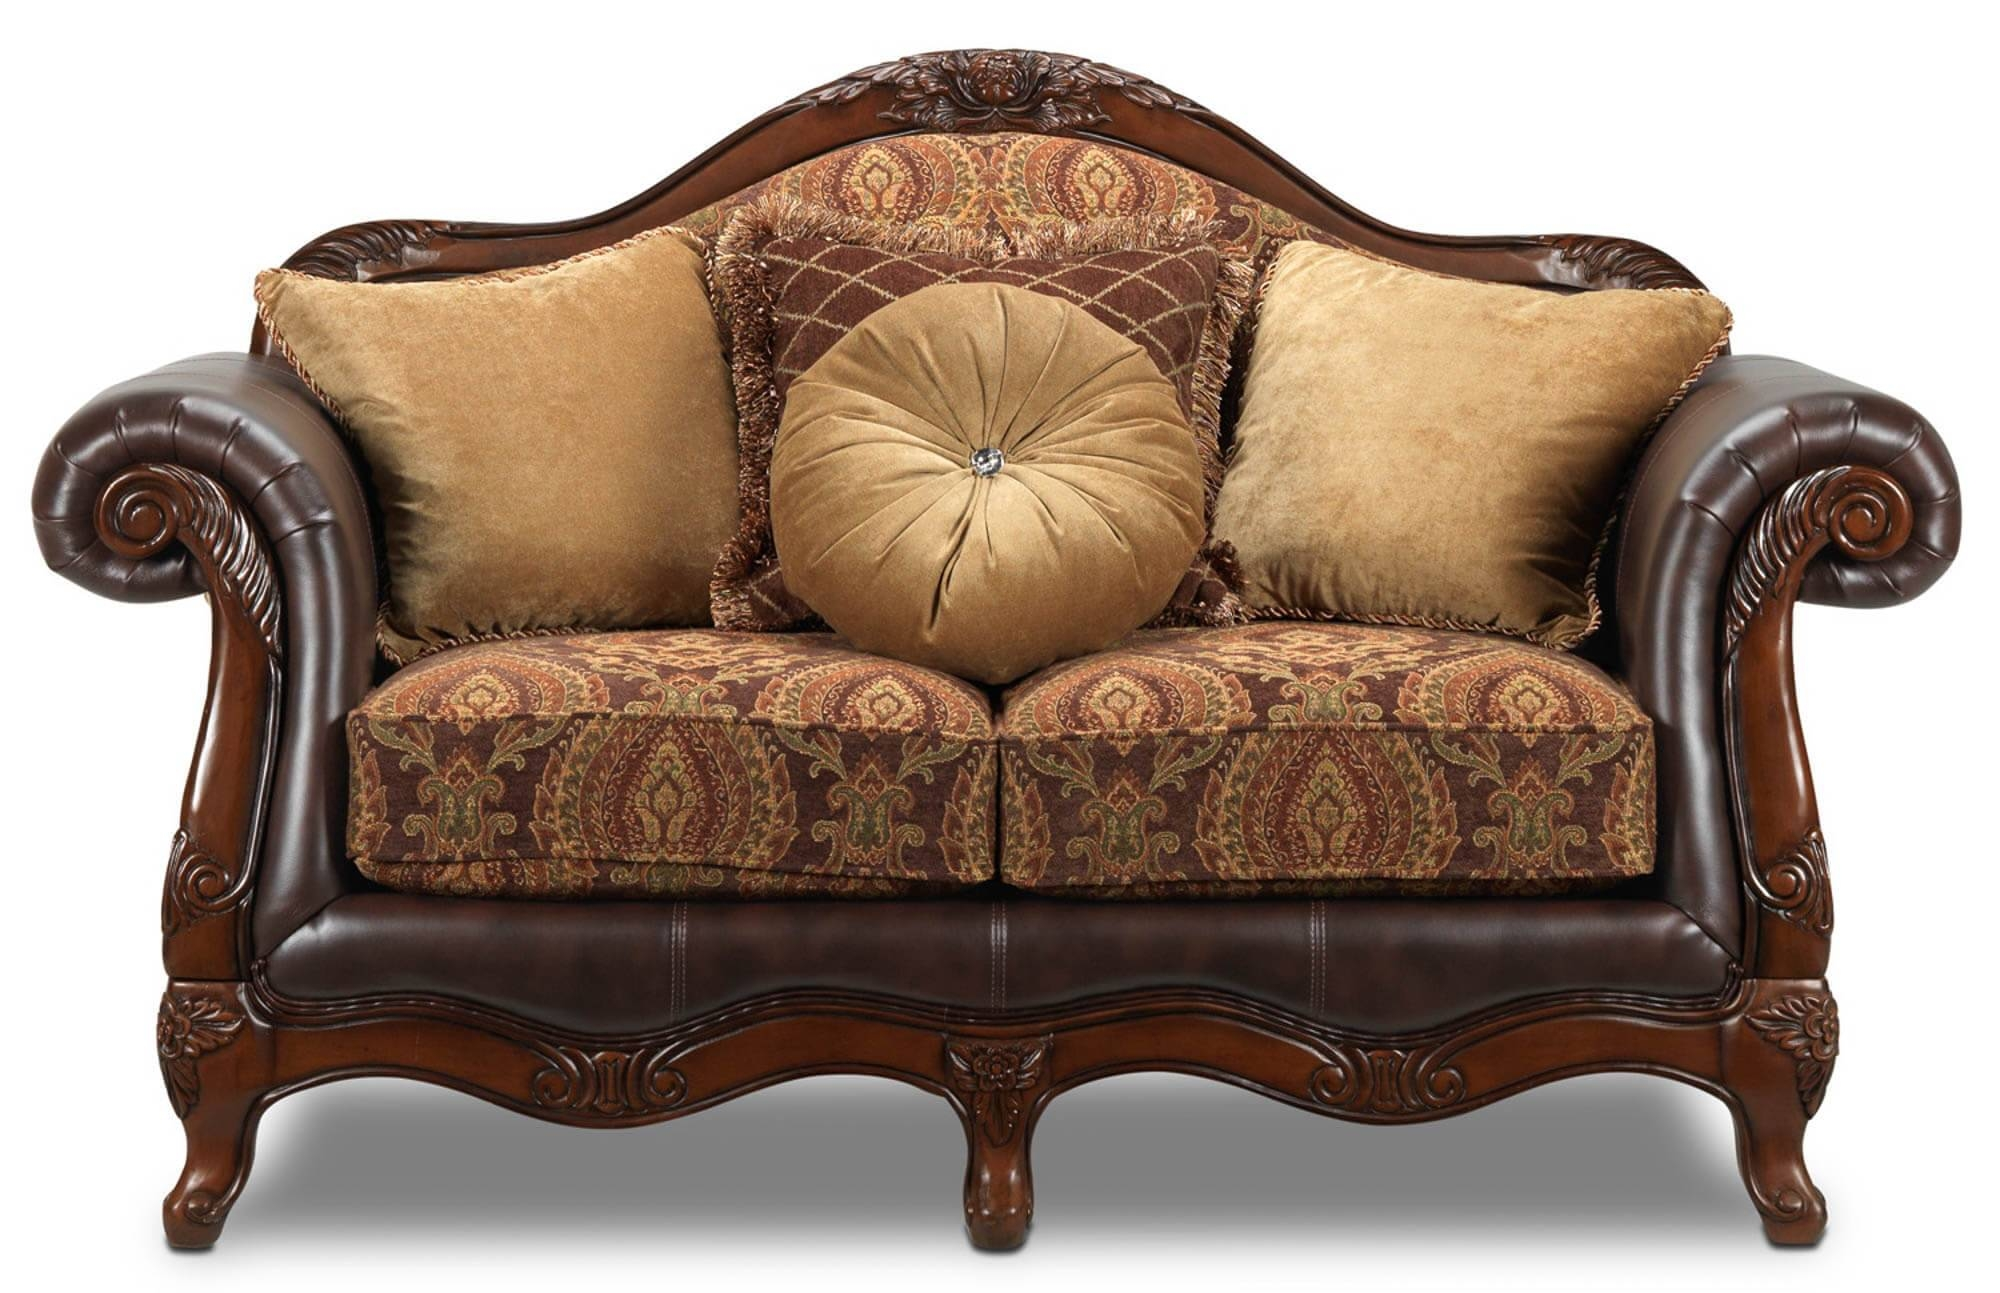 Sofas, Chesterfield & Club Chair Primer — Gentleman's Gazette within Vintage Sofa Styles (Image 23 of 30)